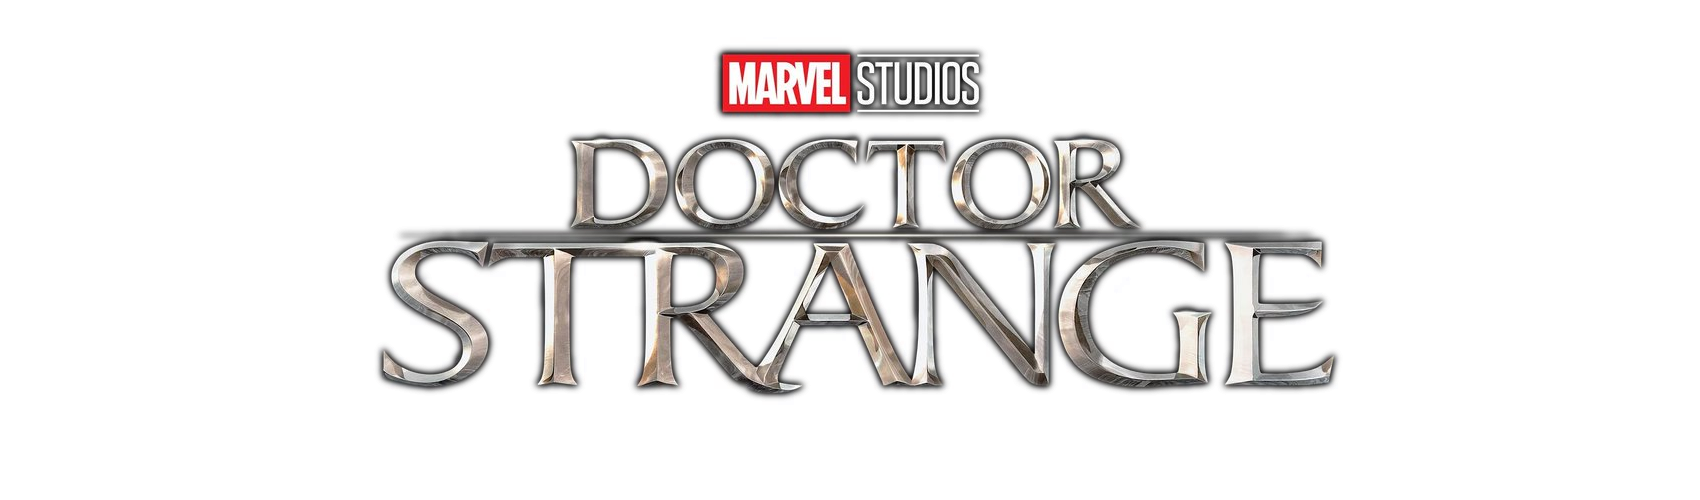 x428-doctorstrange.png.pagespeed.ic.HreymBU7OA